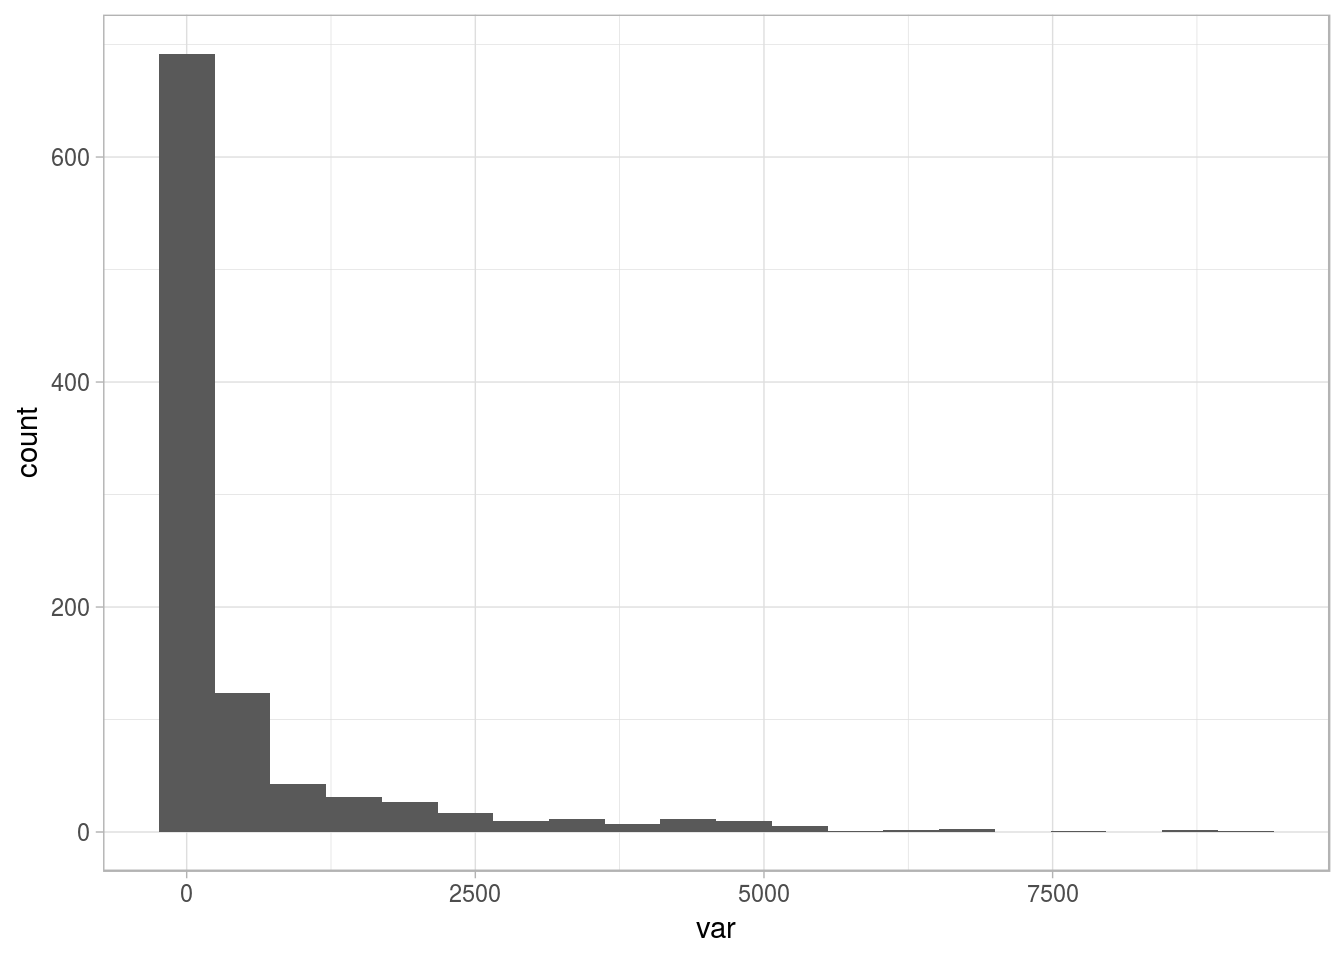 Sample distribution with long tail